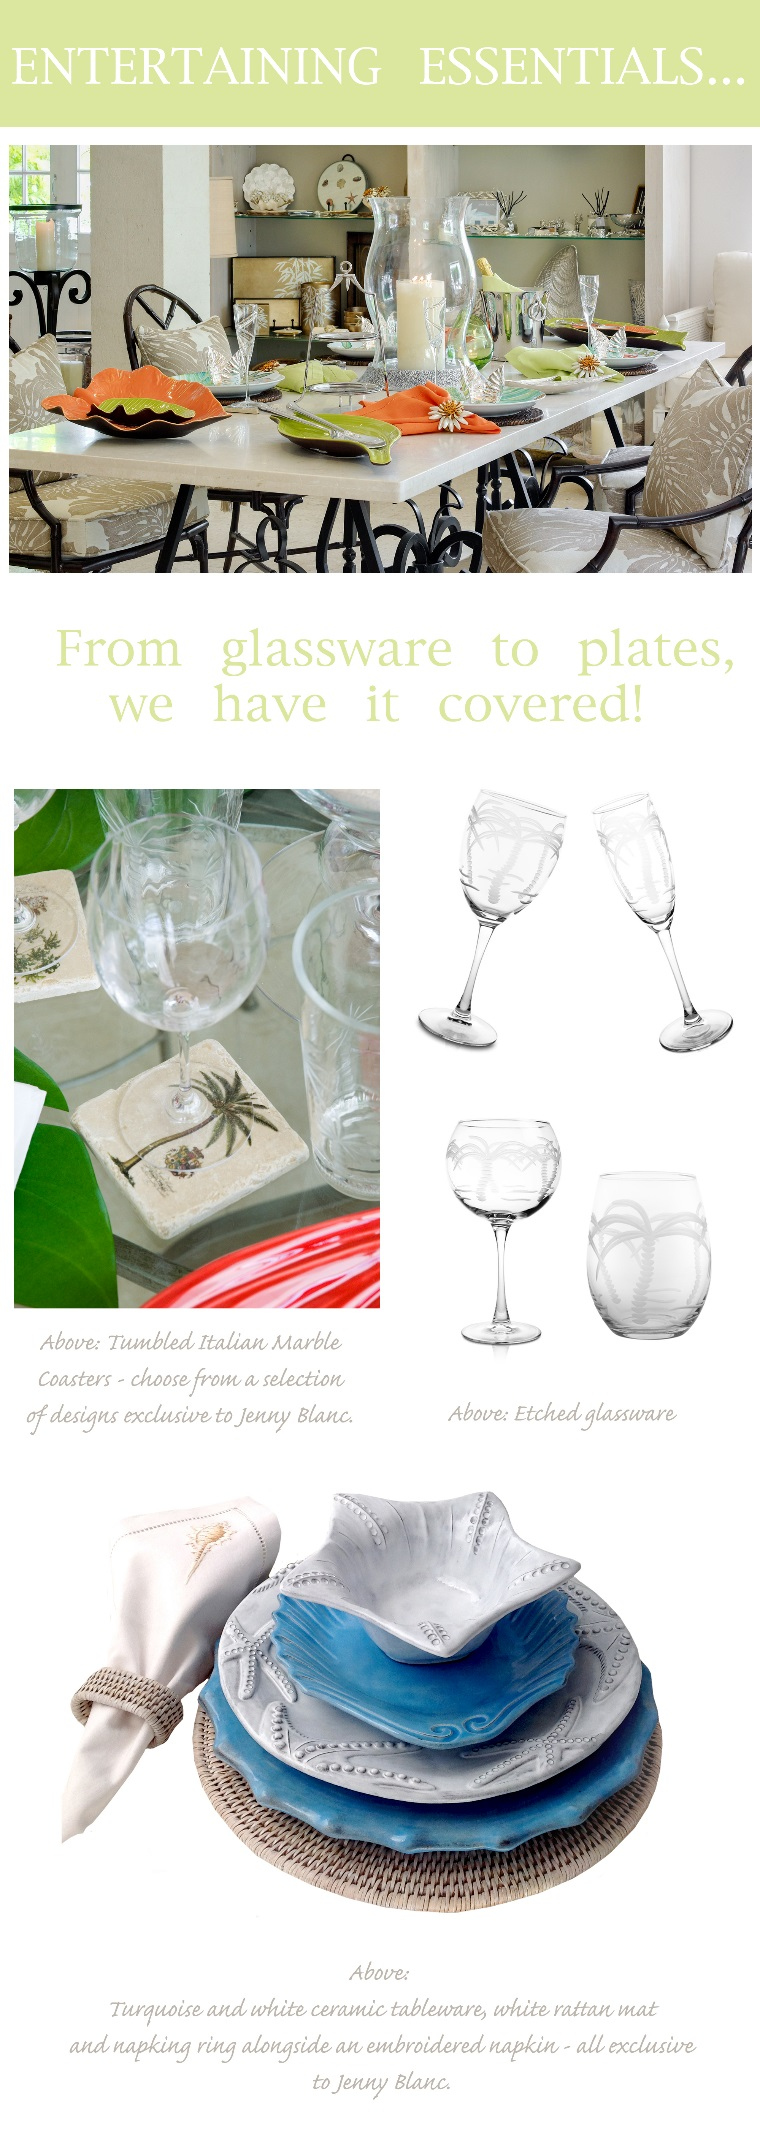 Jenny Blanc Blog - Entertaining Essentials